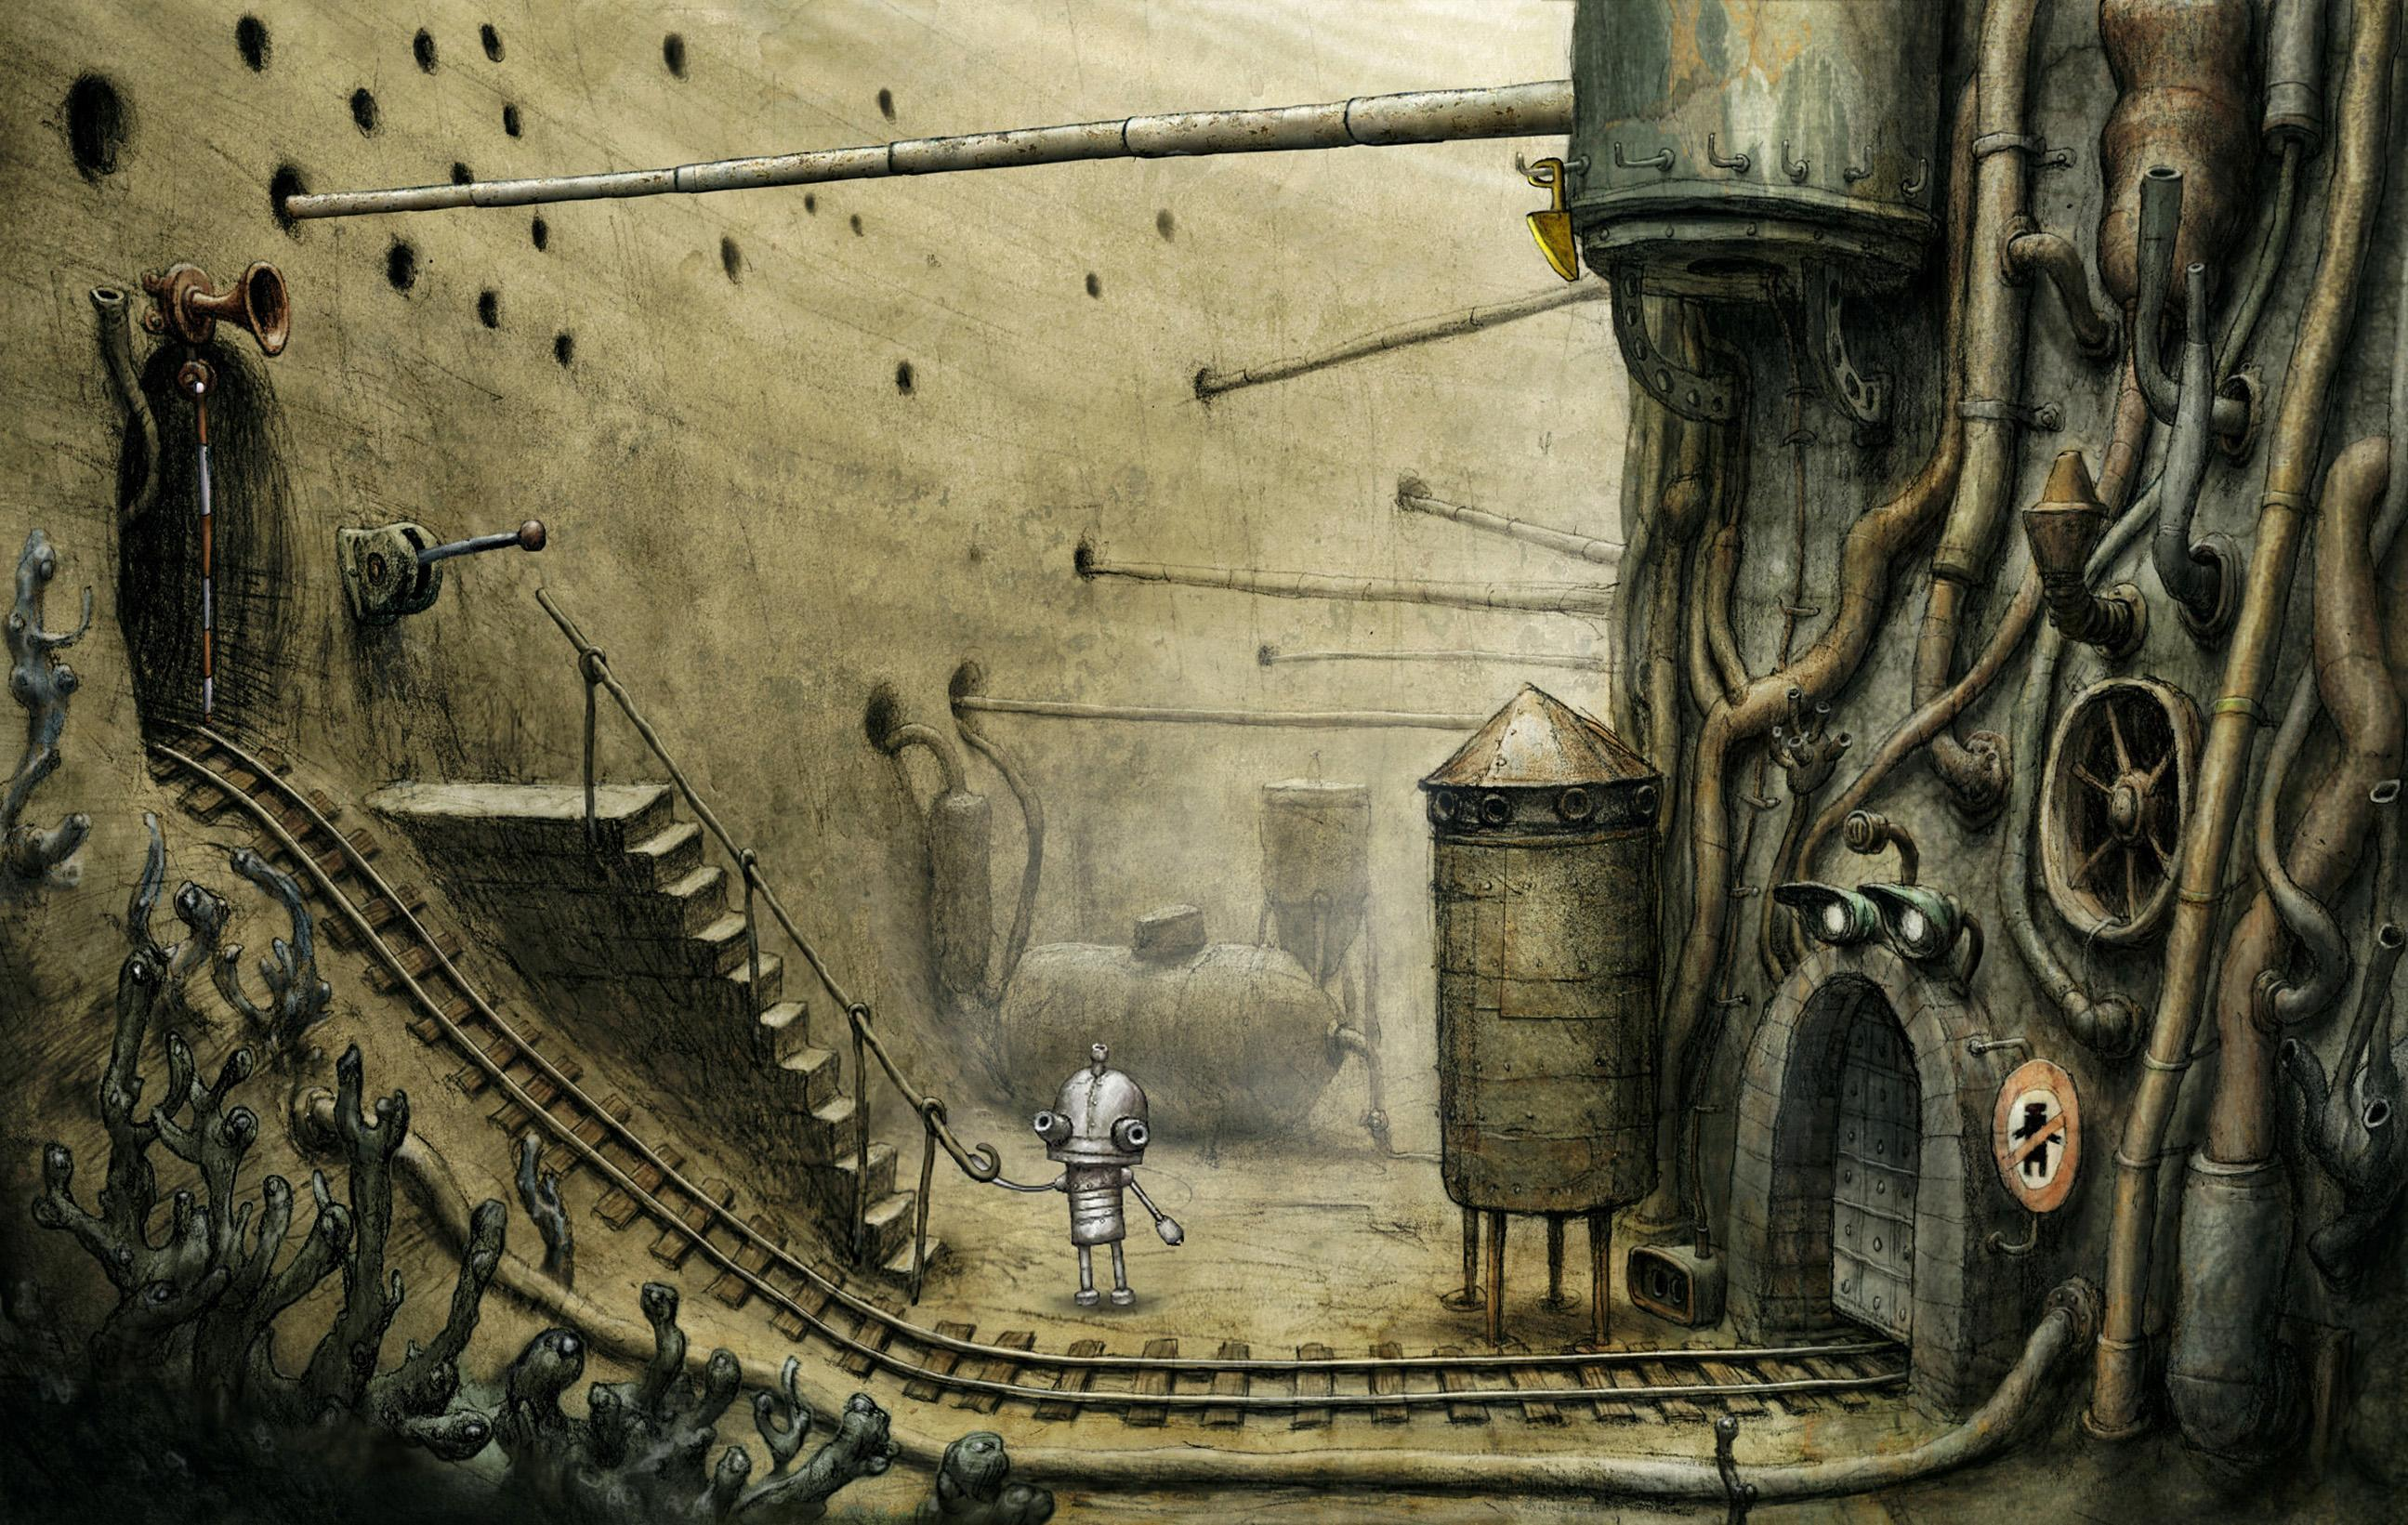 Machinarium Demo 2.6.9 Screenshot 17